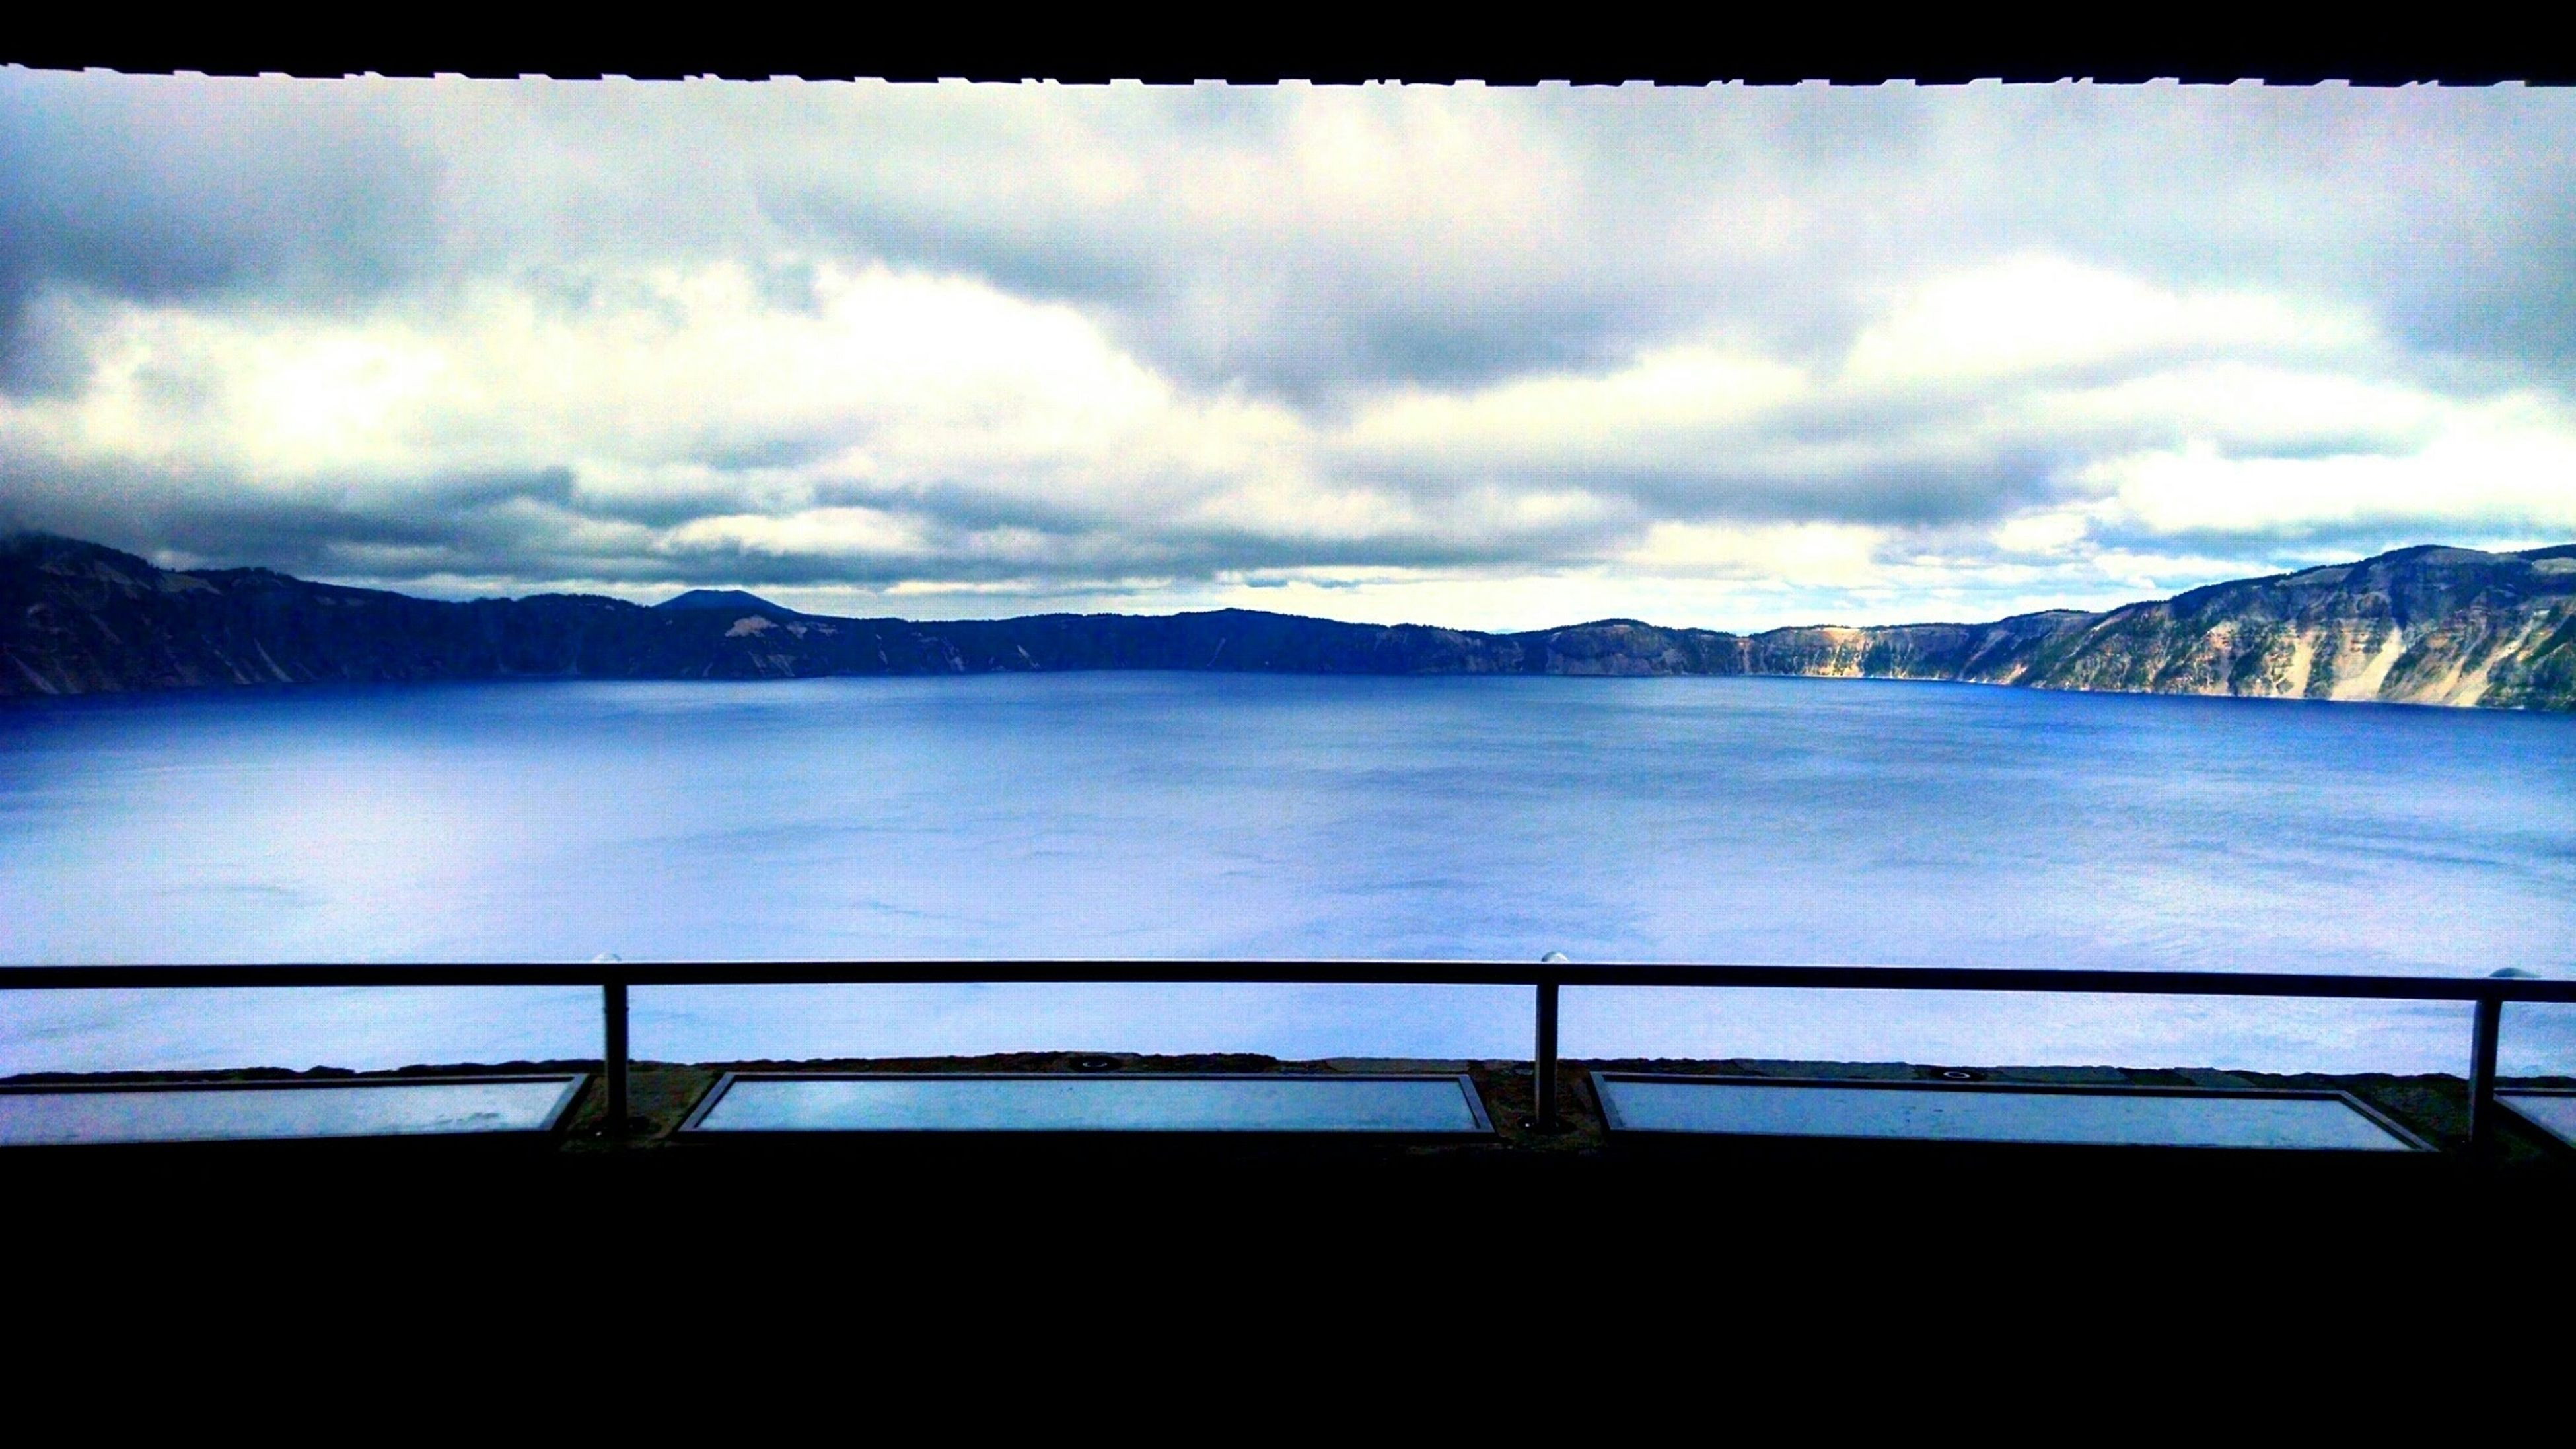 Crater Lake Lookout Crater Lake Crater Lake Blue Water Deepblue Clouds Oregonexplored First Eyeem Photo The Great Outdoors - 2016 EyeEm Awards The Great Outdoors With Adobe LaskaBoha_Photography